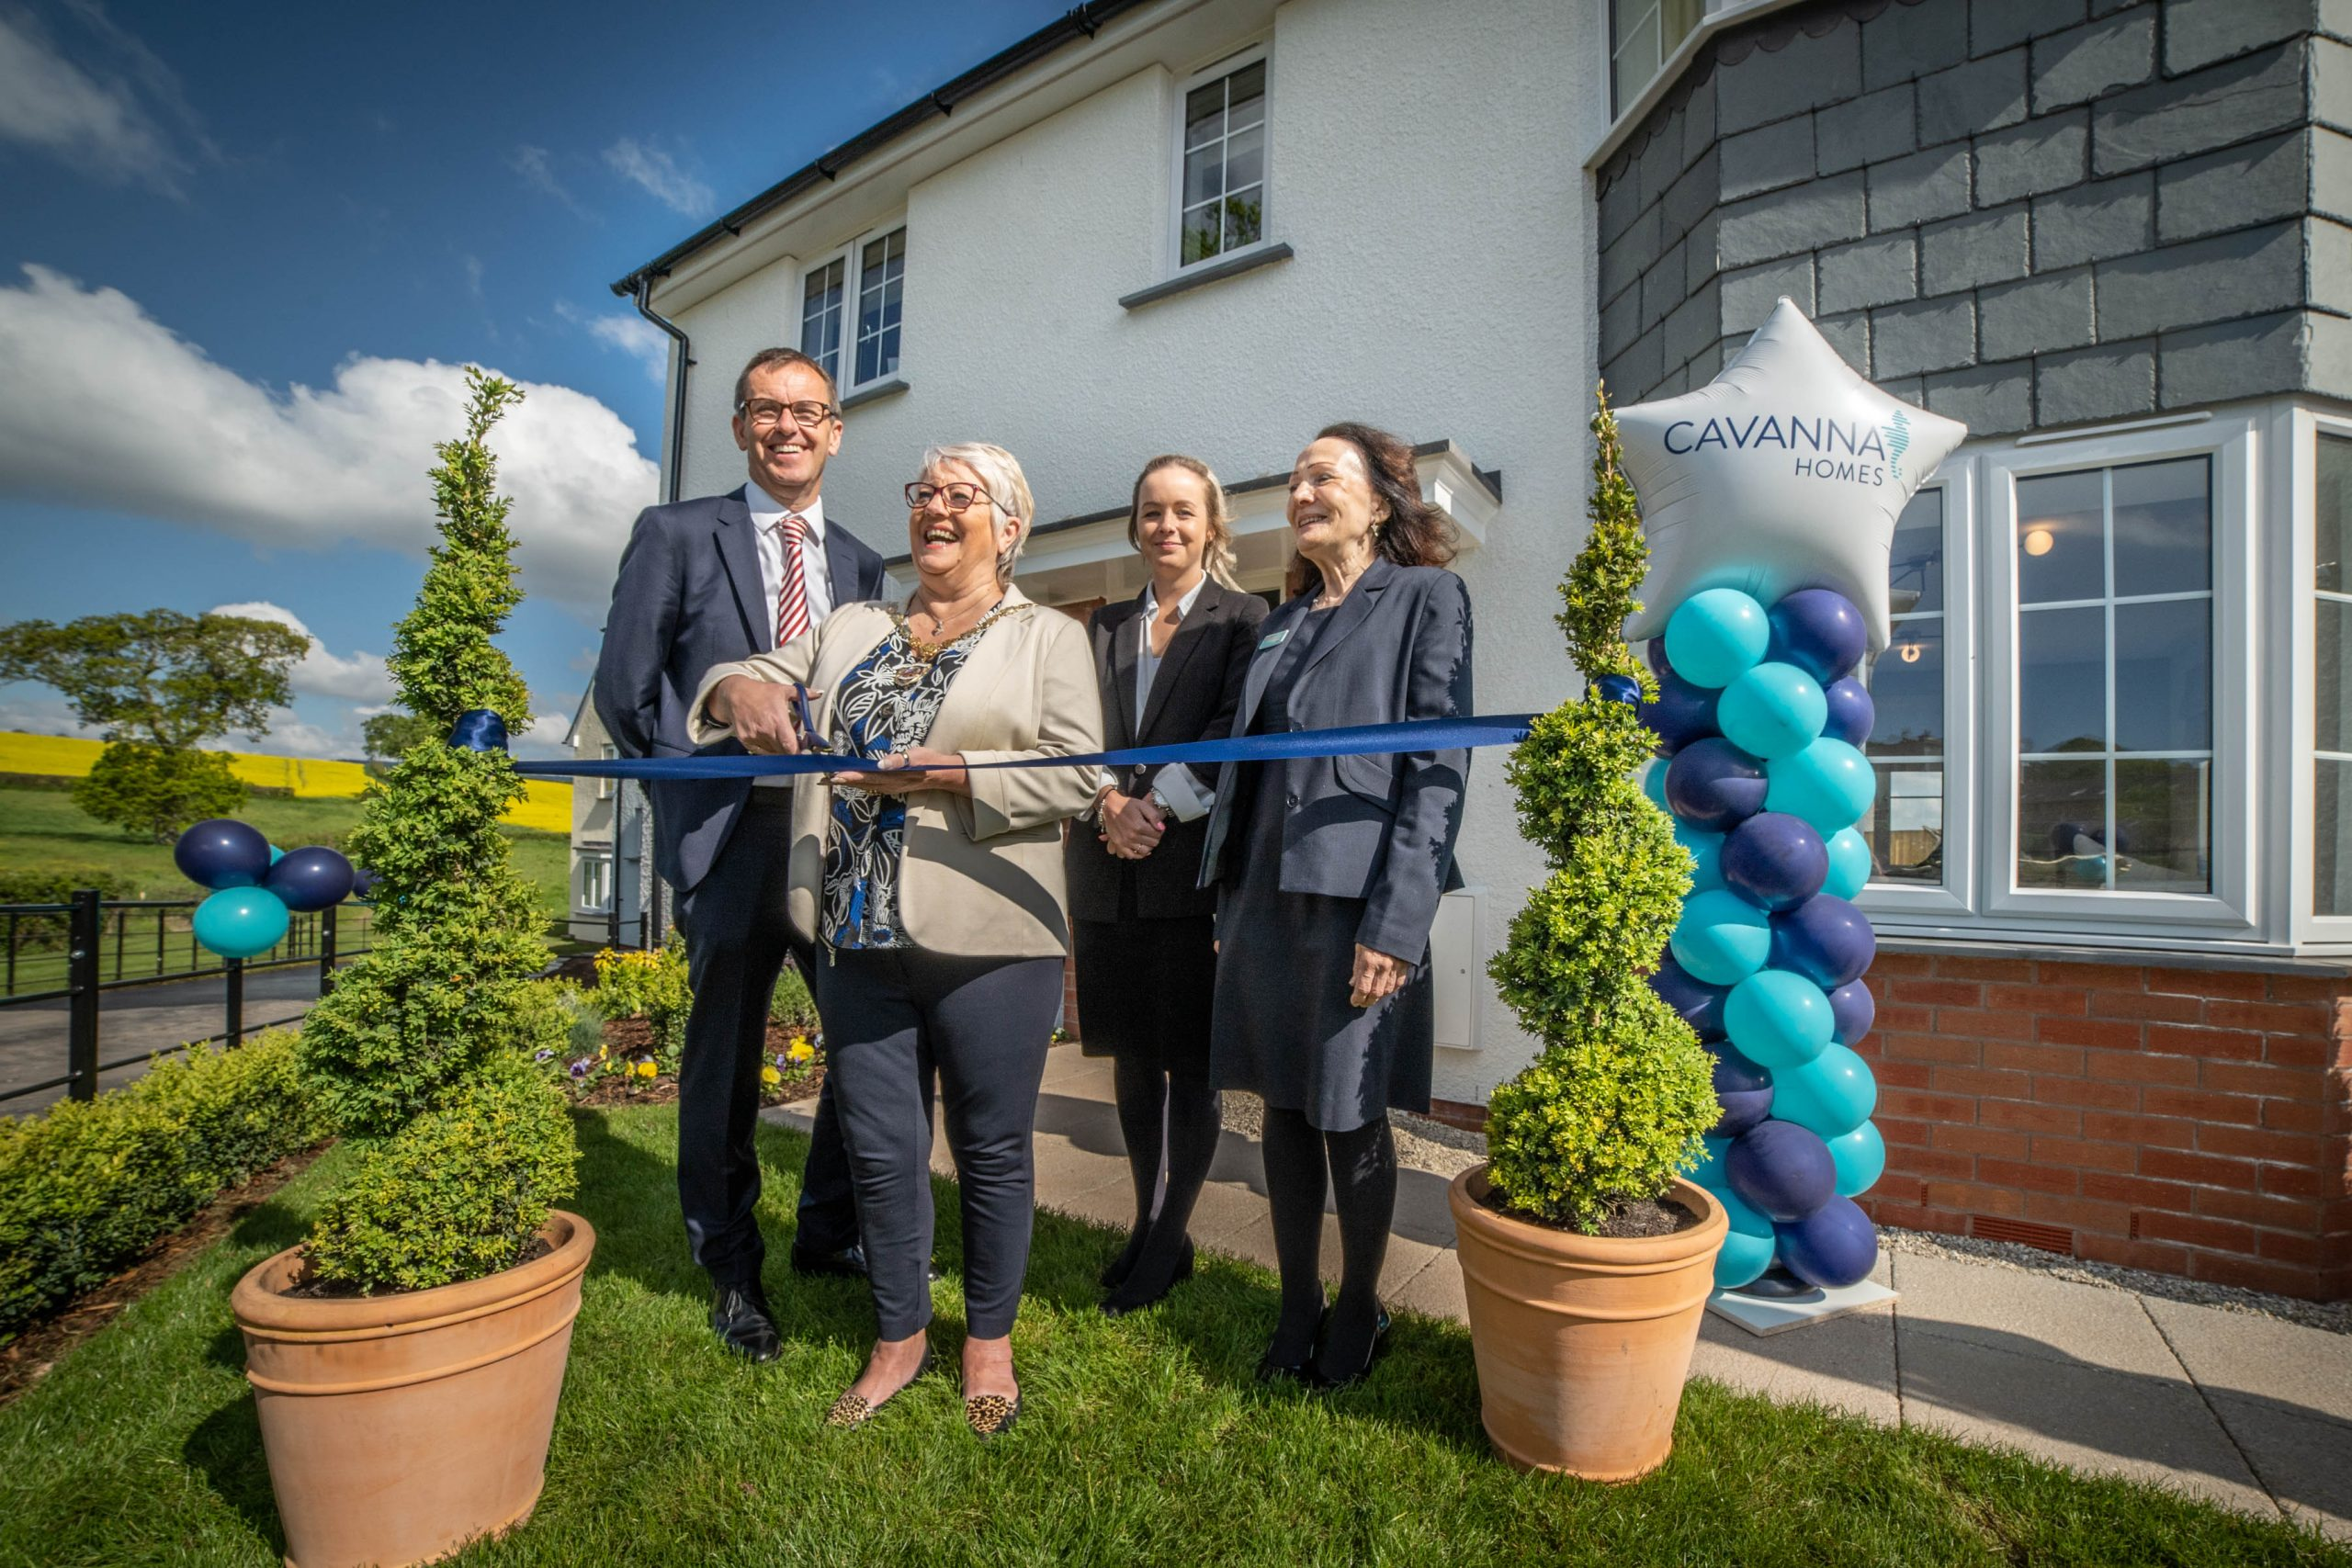 New Show Home Arrives in Dawlish